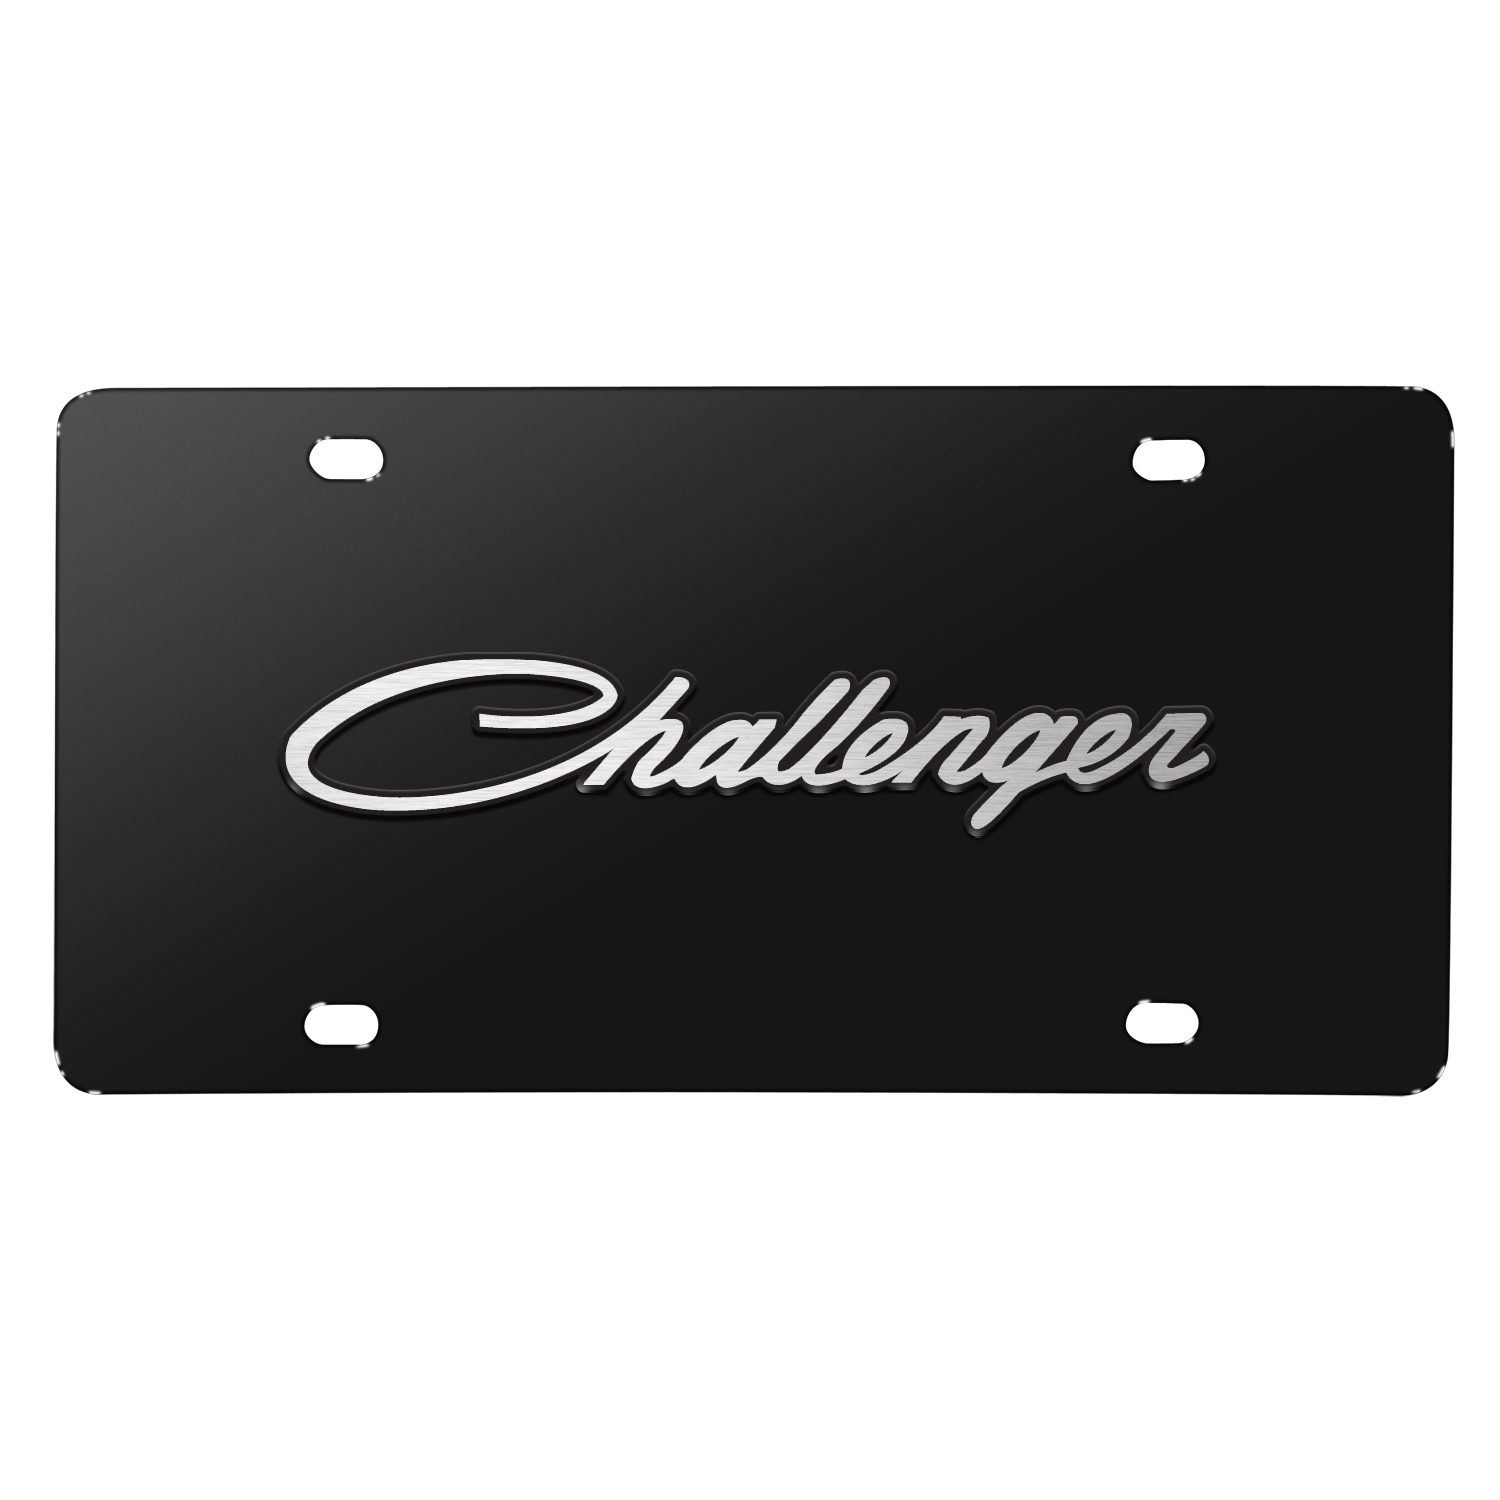 Dodge Challenger Classic 3D Logo on Black Stainless Steel License Plate